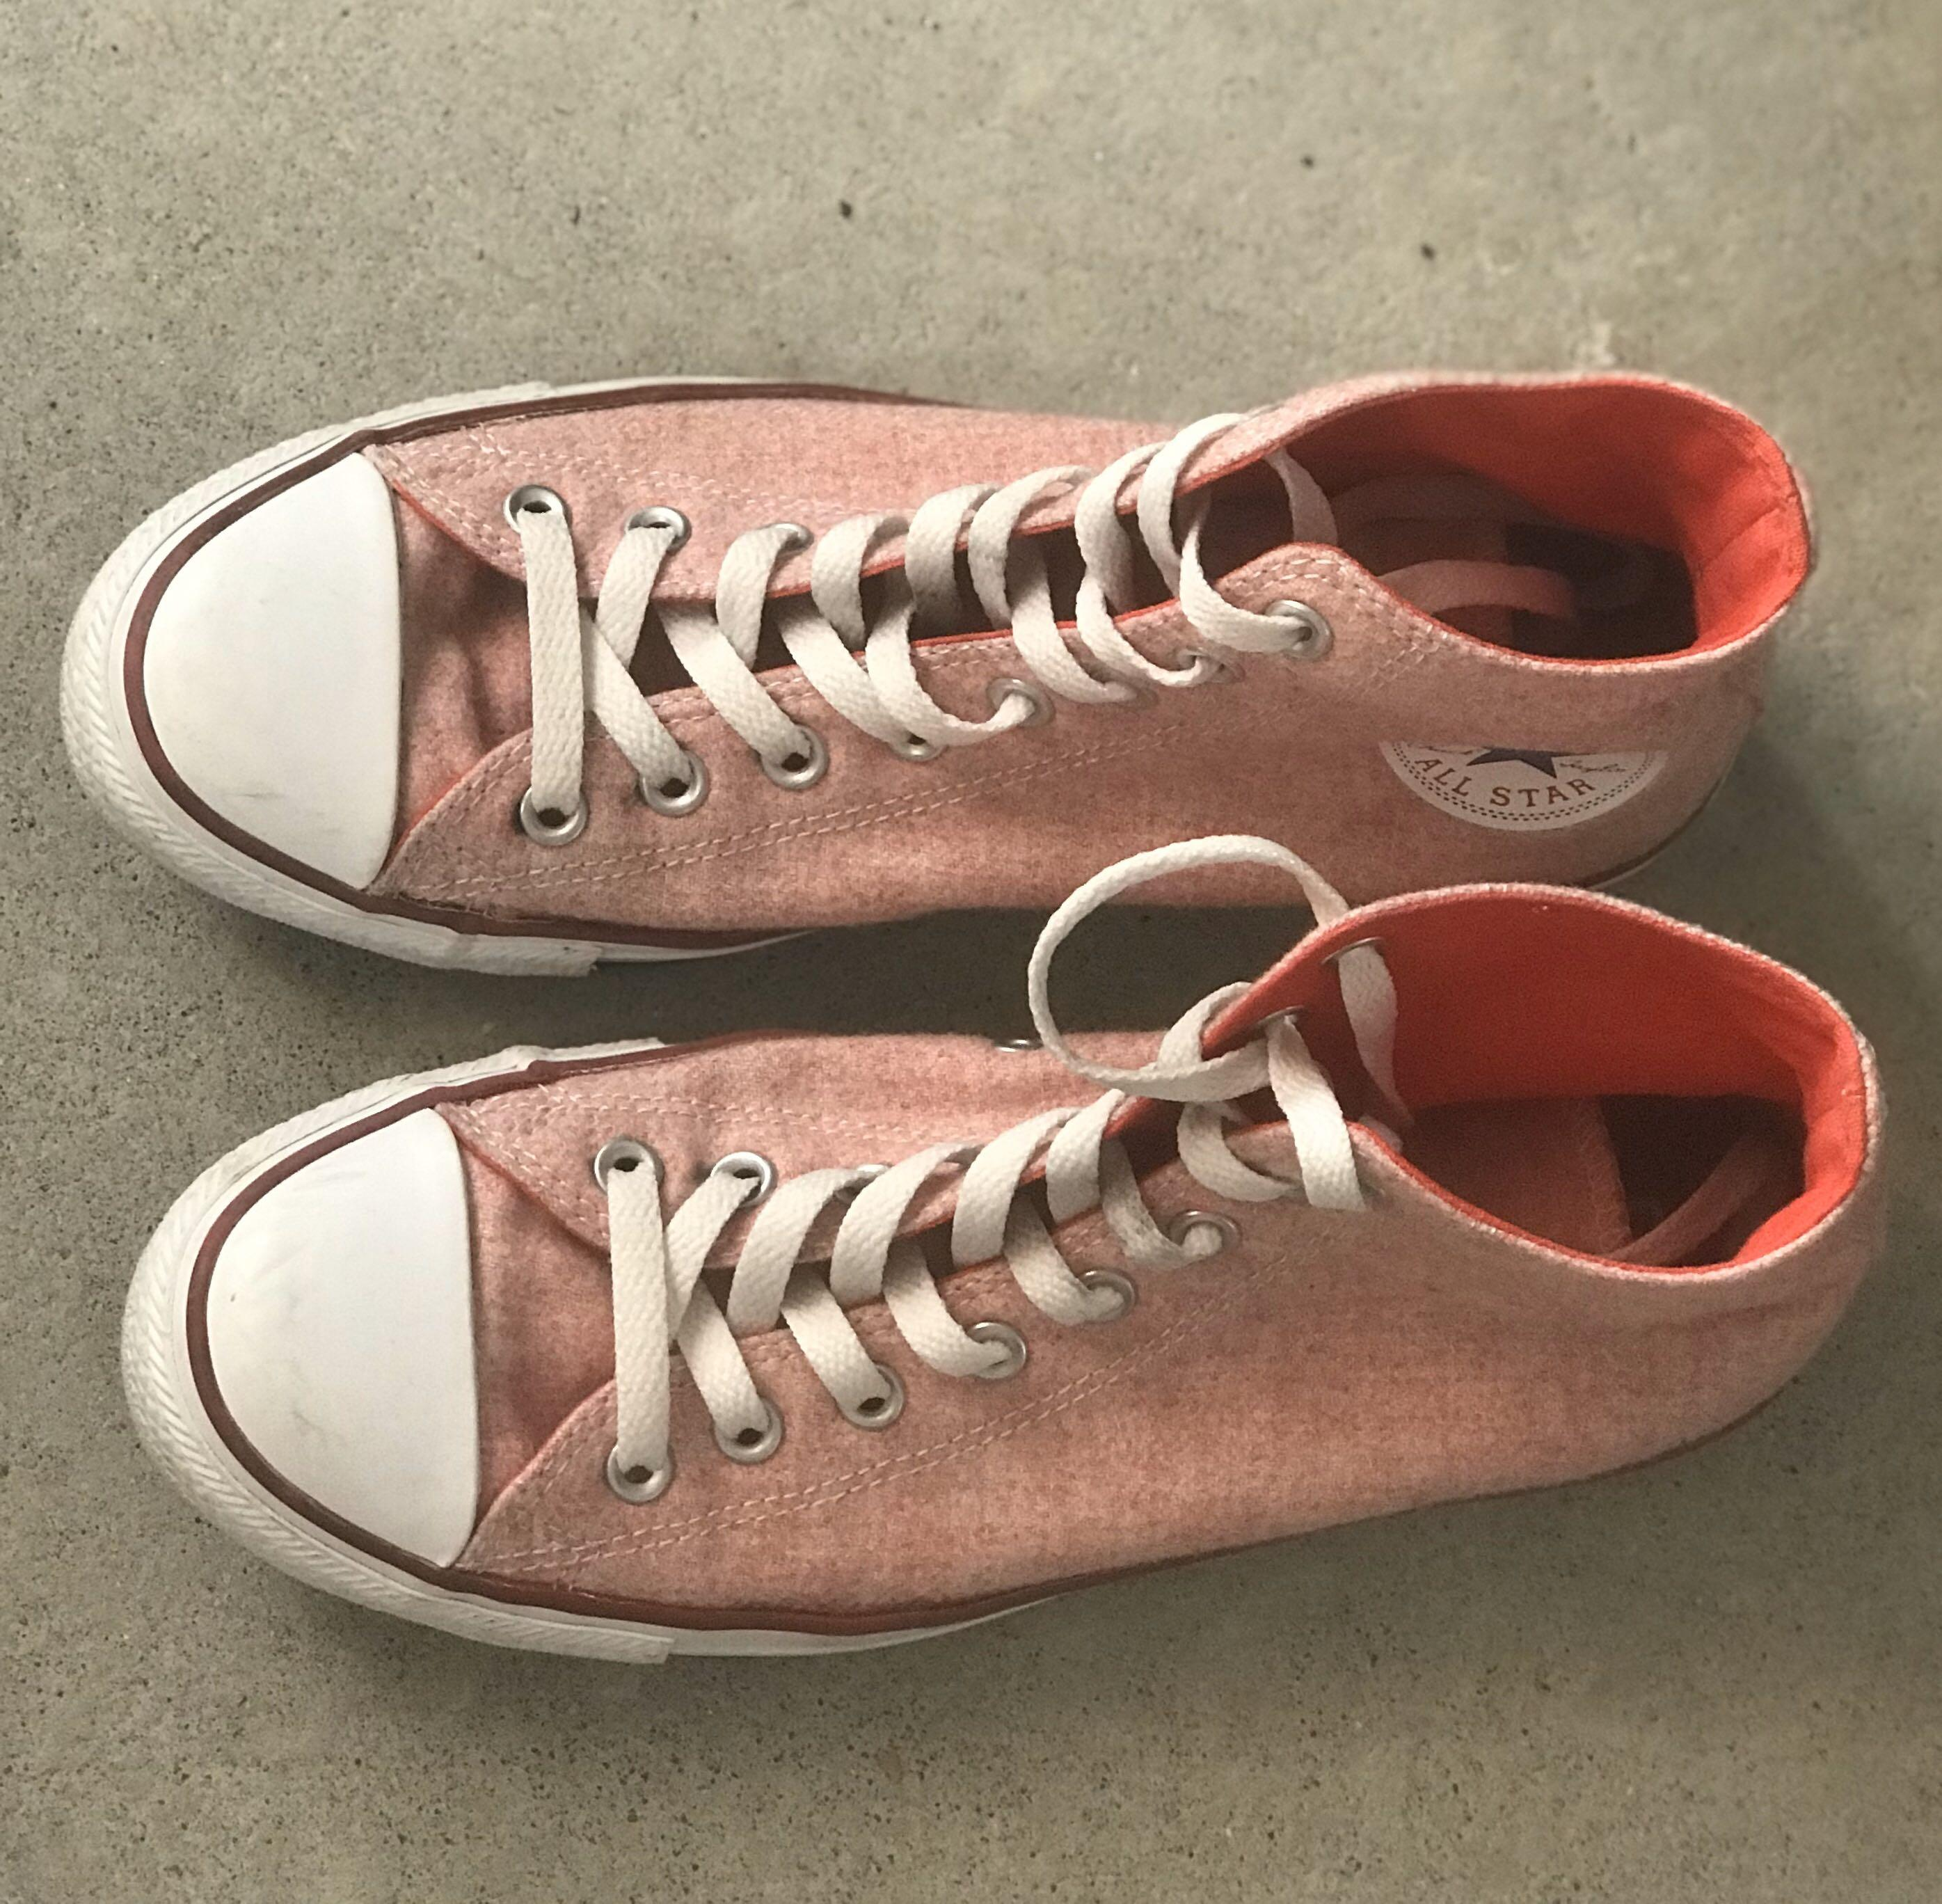 converse size 10 high tops chuck taylors pastel red